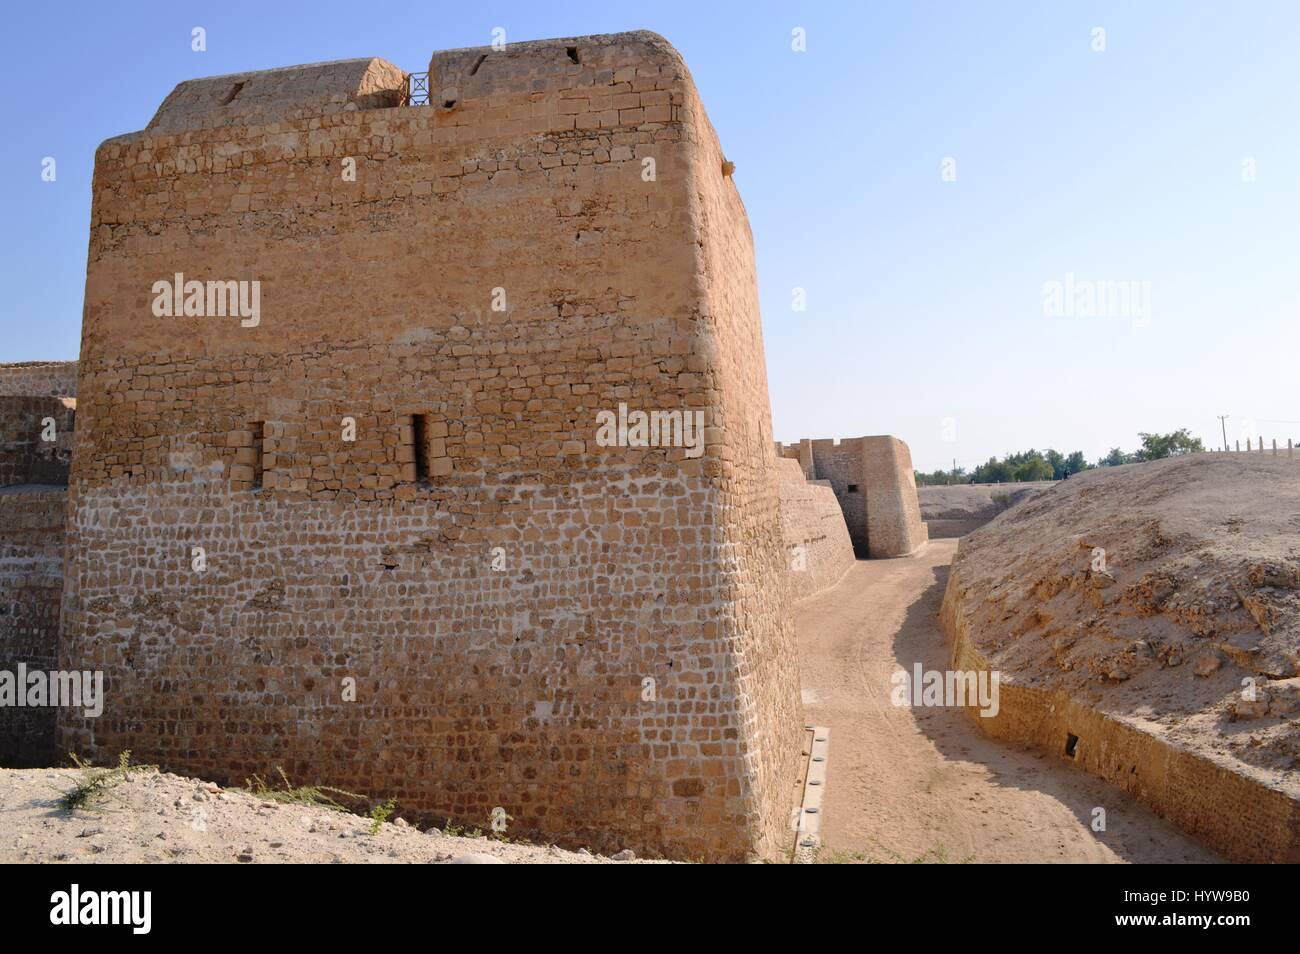 Exterior structure photos of the Bahrain Fort (Qalat al